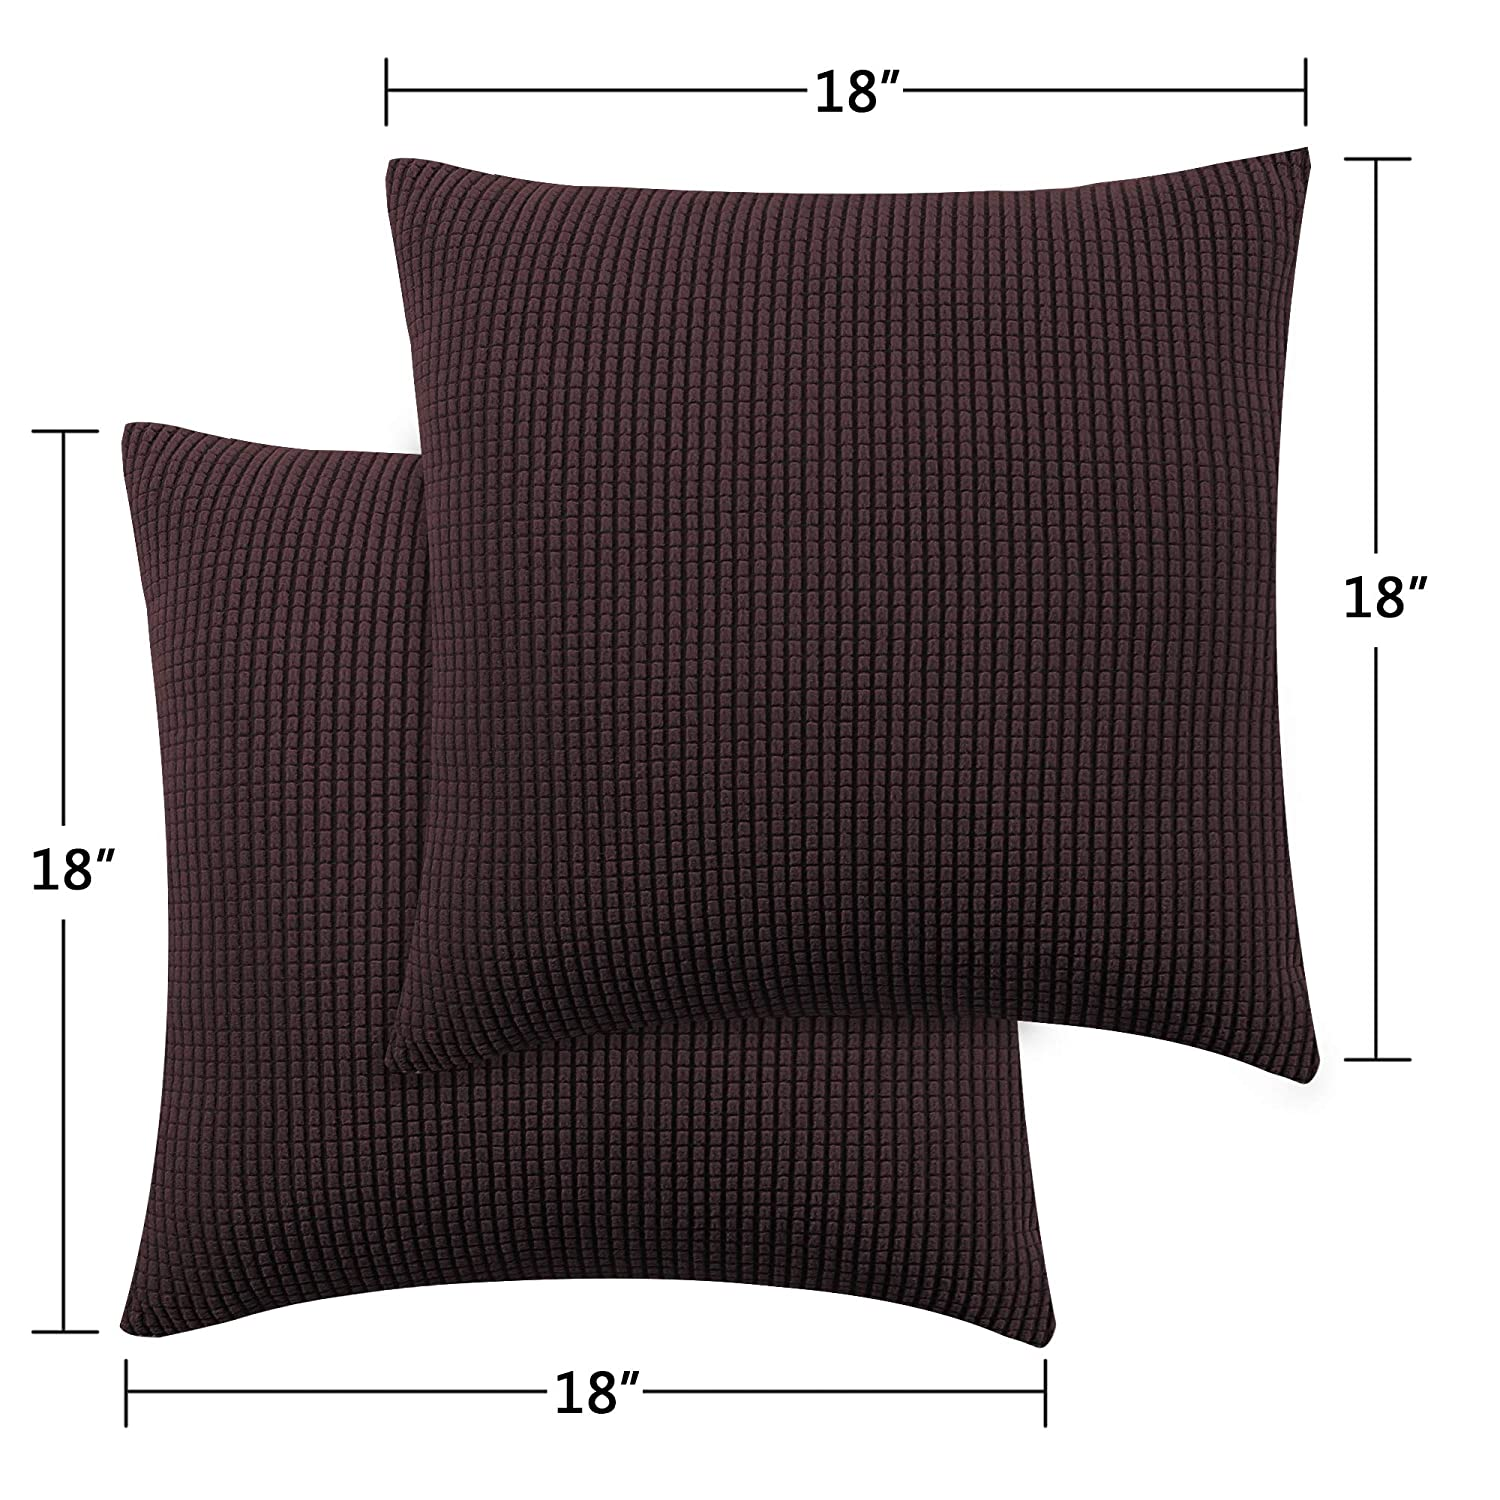 Pillow Covers for Couch//Sofa//Bedroom H.VERSAILTEX Textured Small Checked Soft Square Throw Pillow Covers Set Spandex Jacquard Fabric Pillow Cases for Throw Pillow 18x18 inch Charcoal Gray